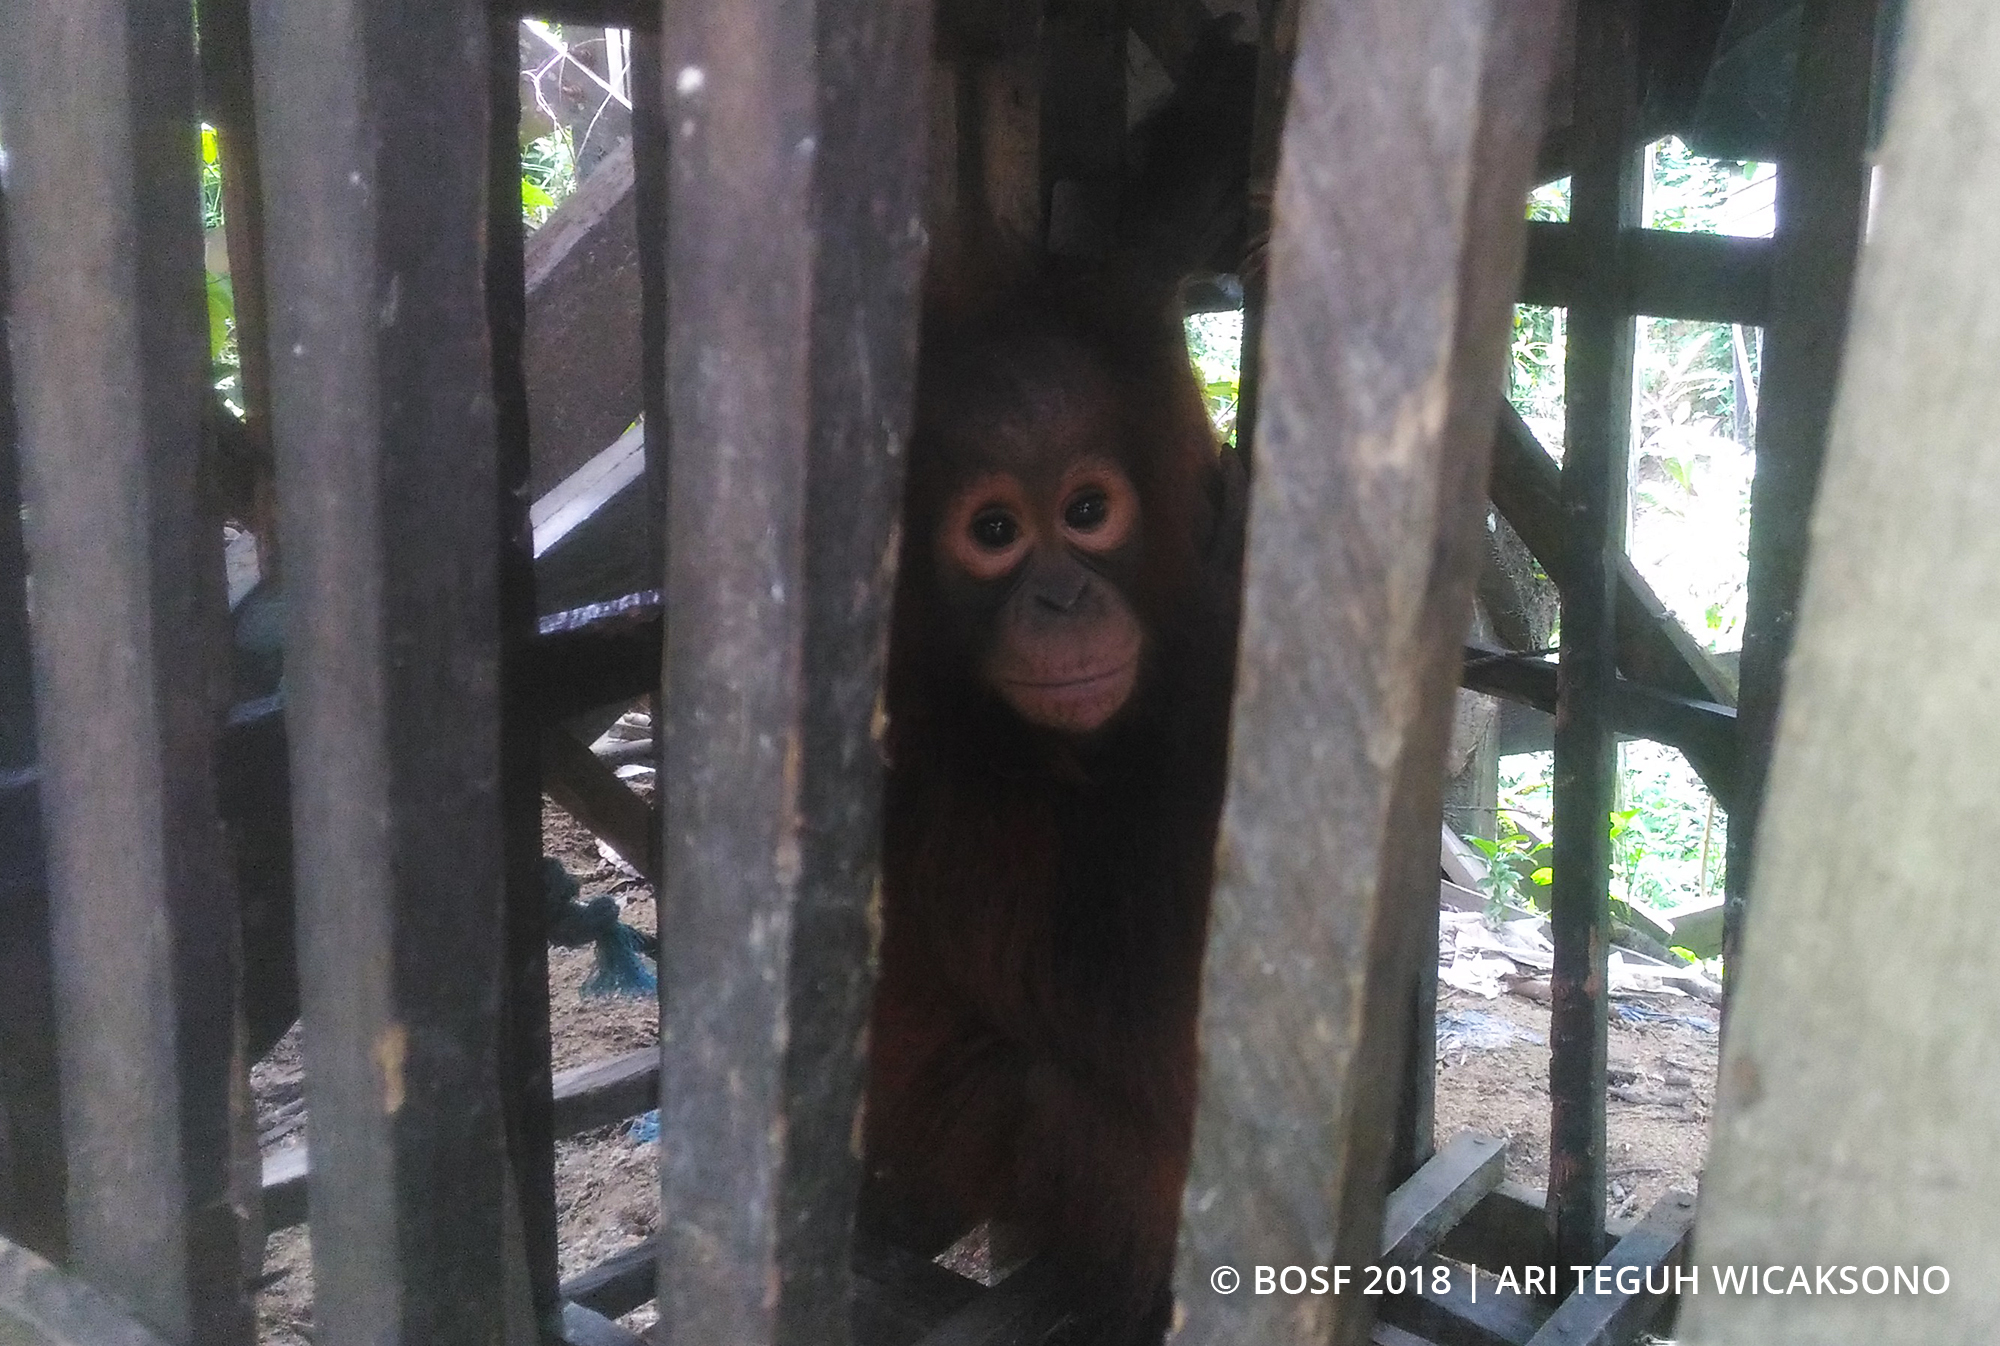 100000 orangutans killed in Borneo